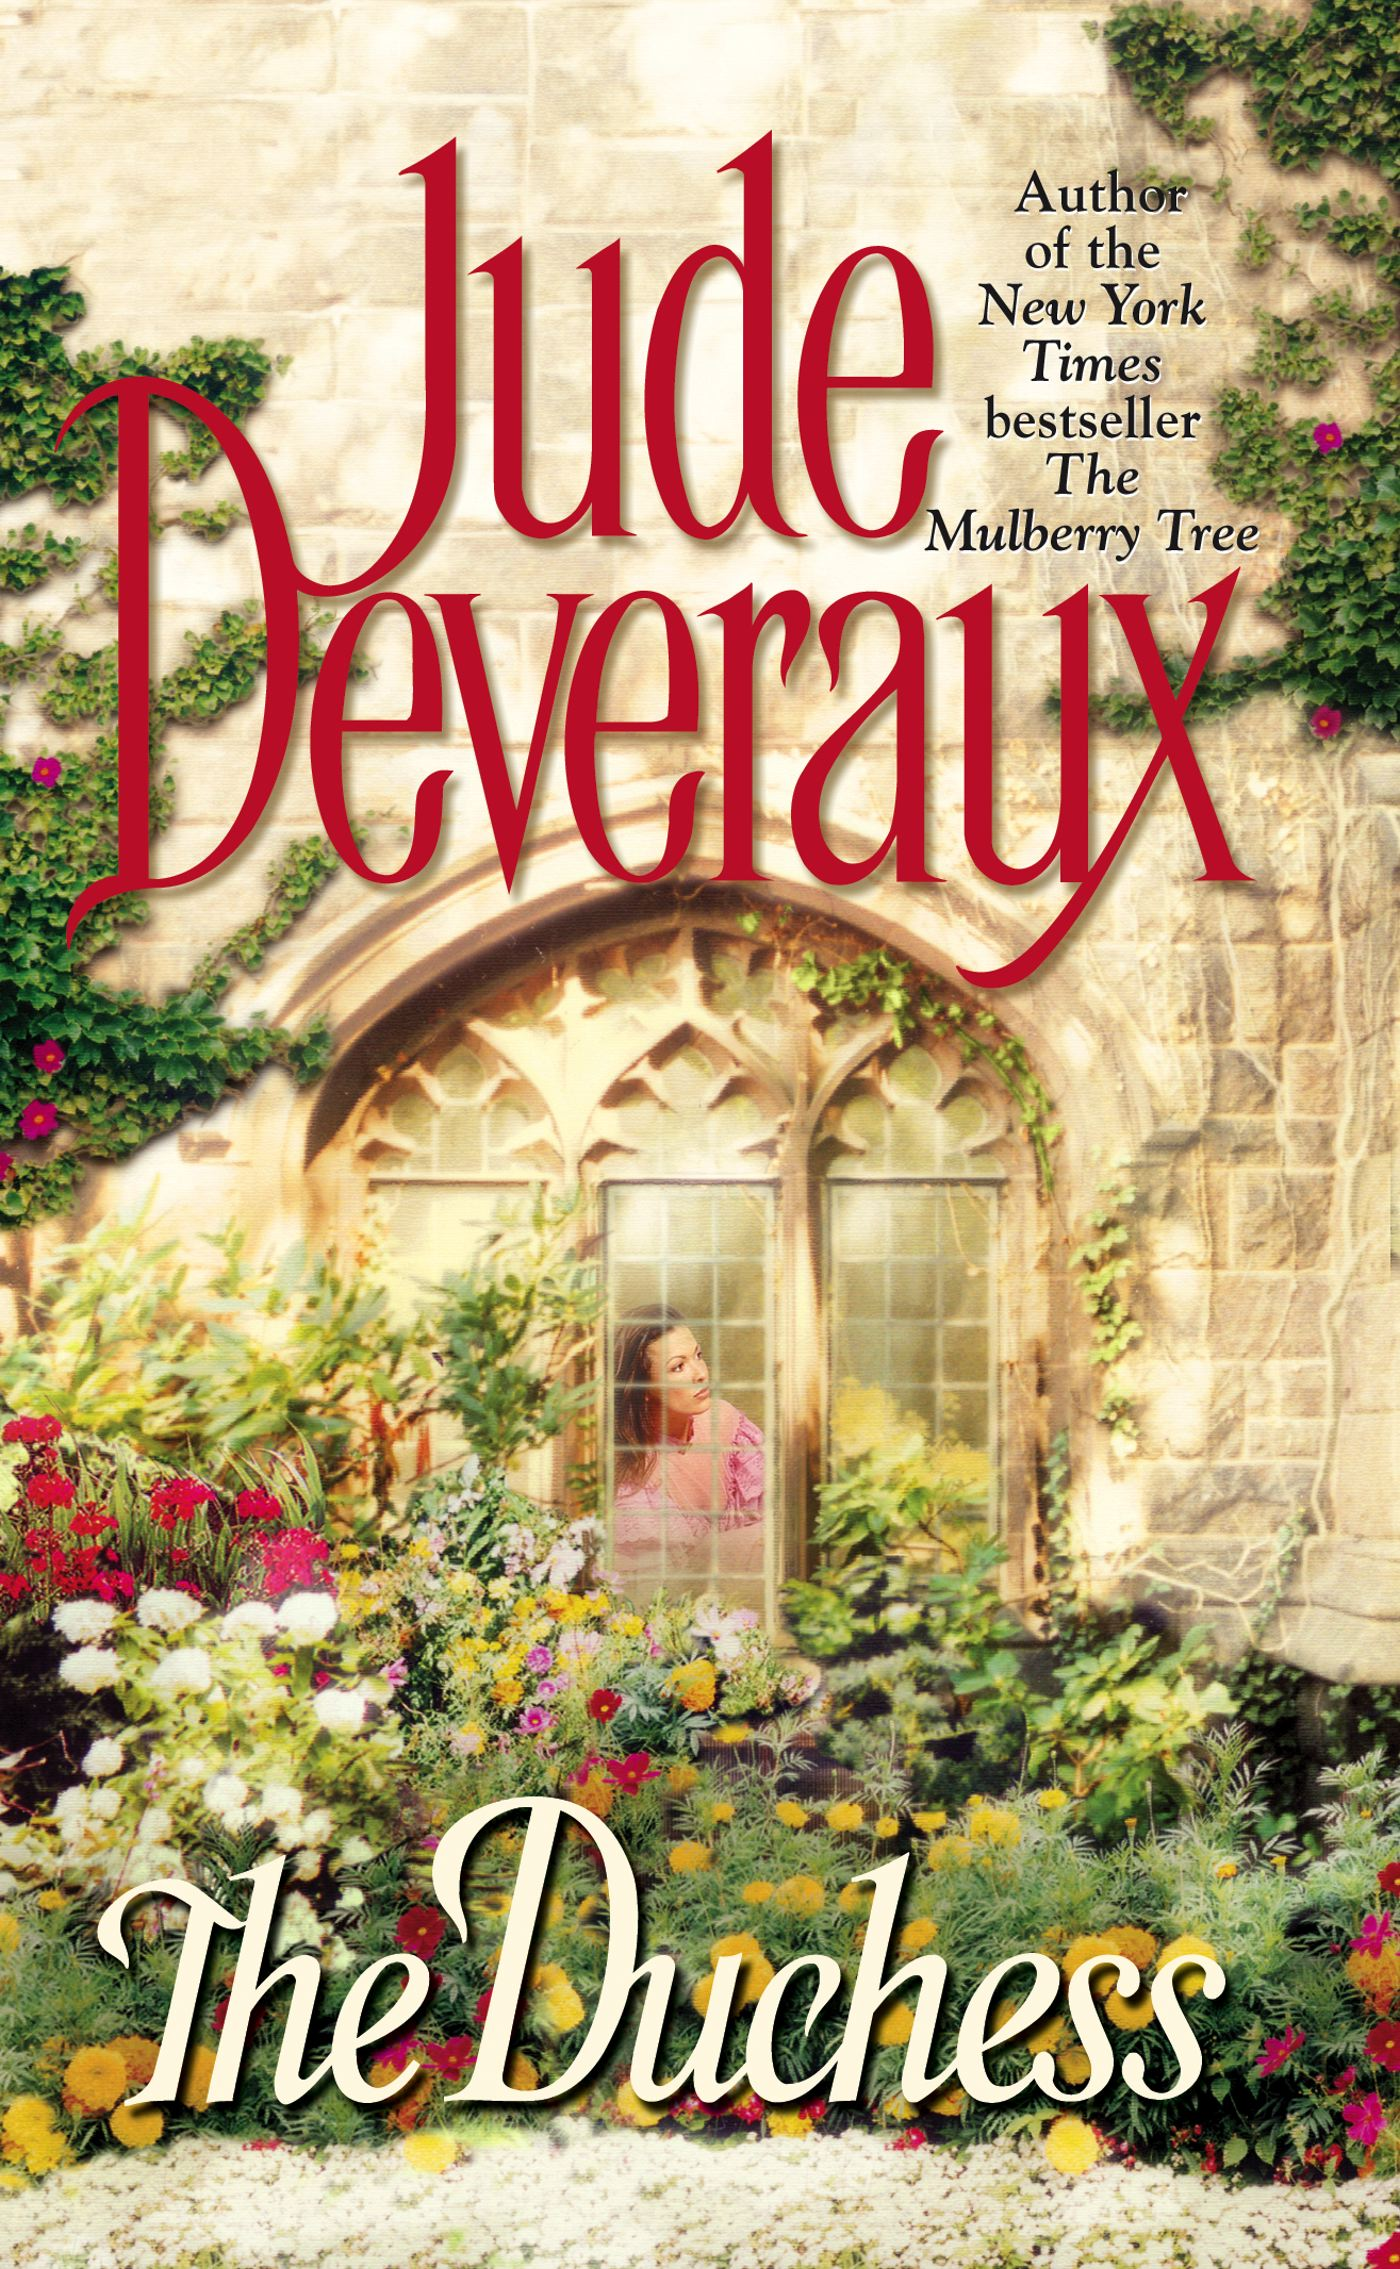 The duchess ebook by jude deveraux official publisher page cvr9780743459211 9780743459211 hr the duchess fandeluxe PDF